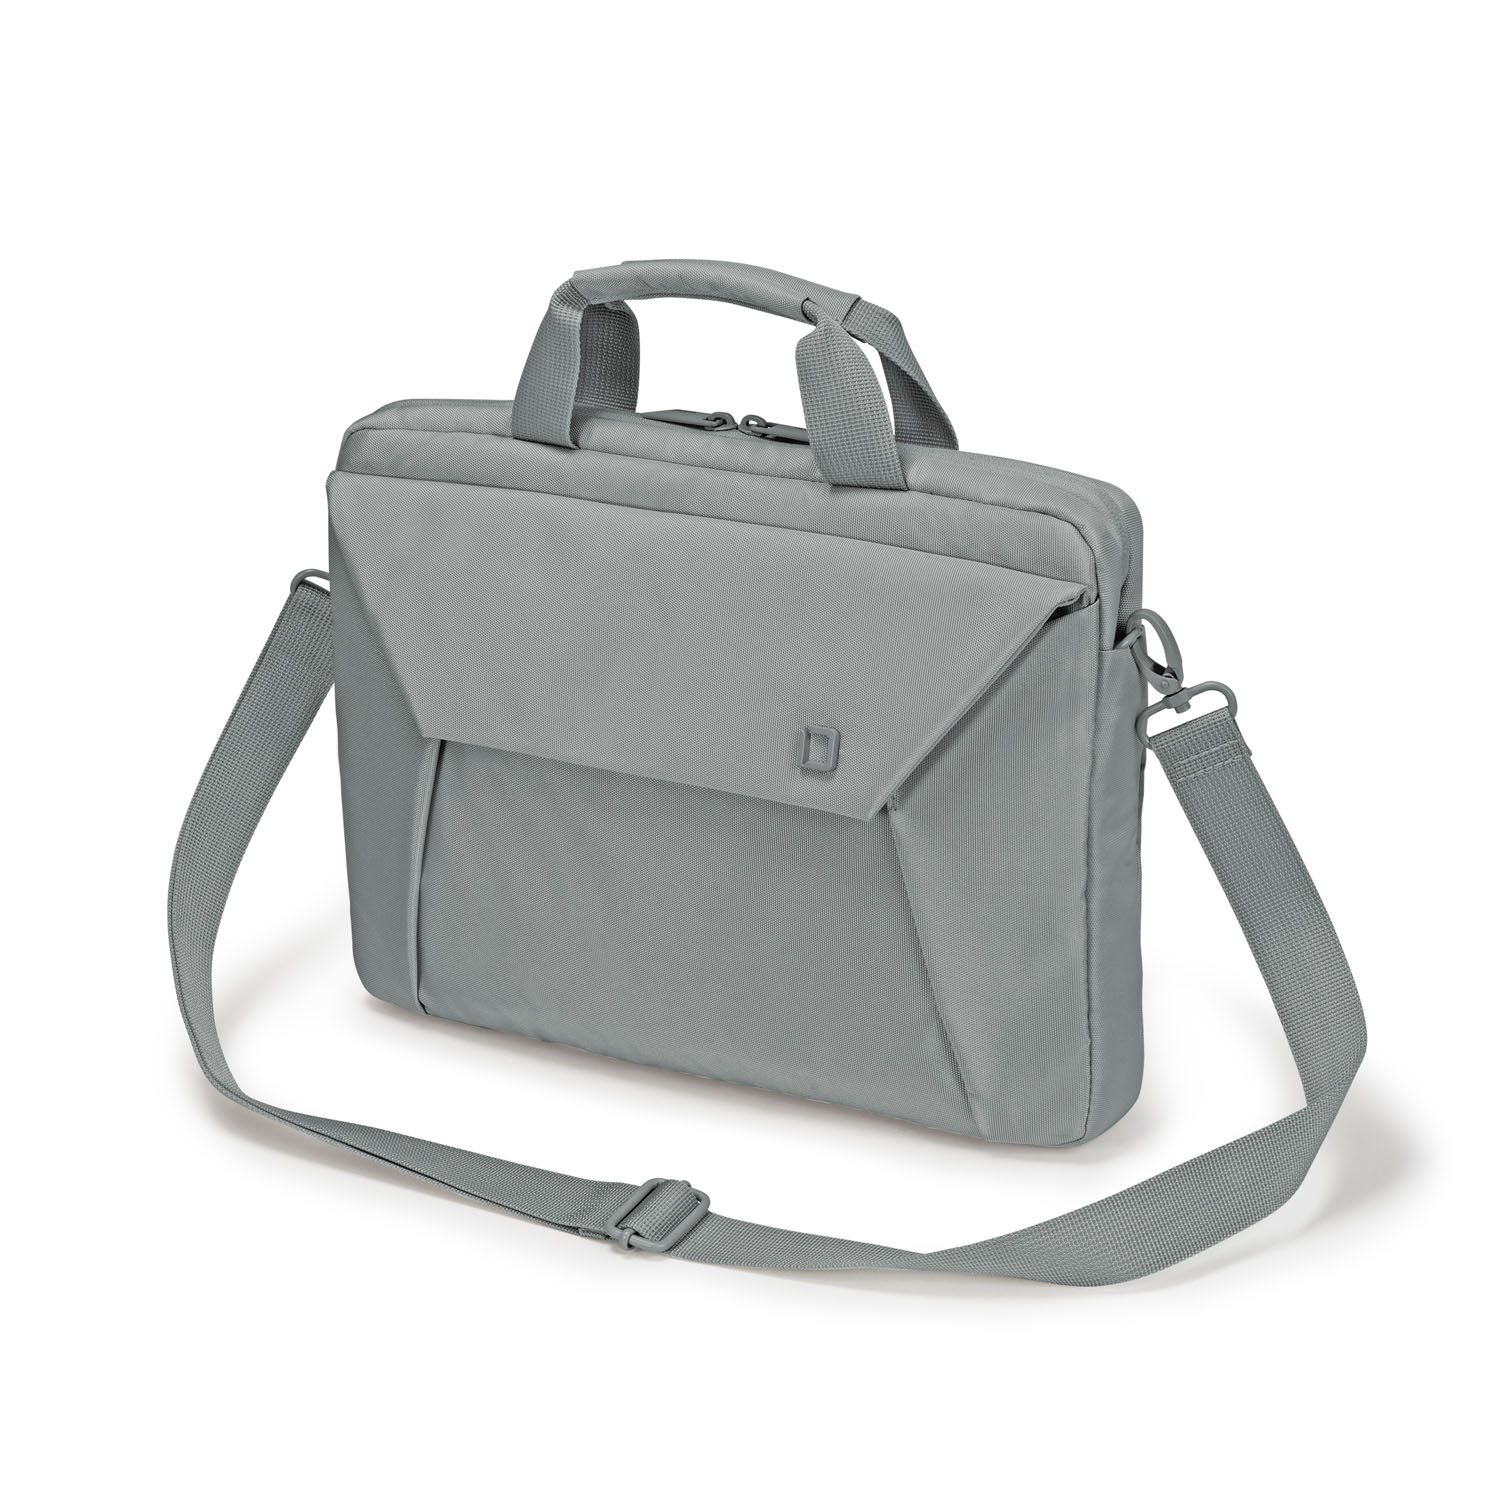 D31210 Dicota Slim Case EDGE 10-11.6 šedá